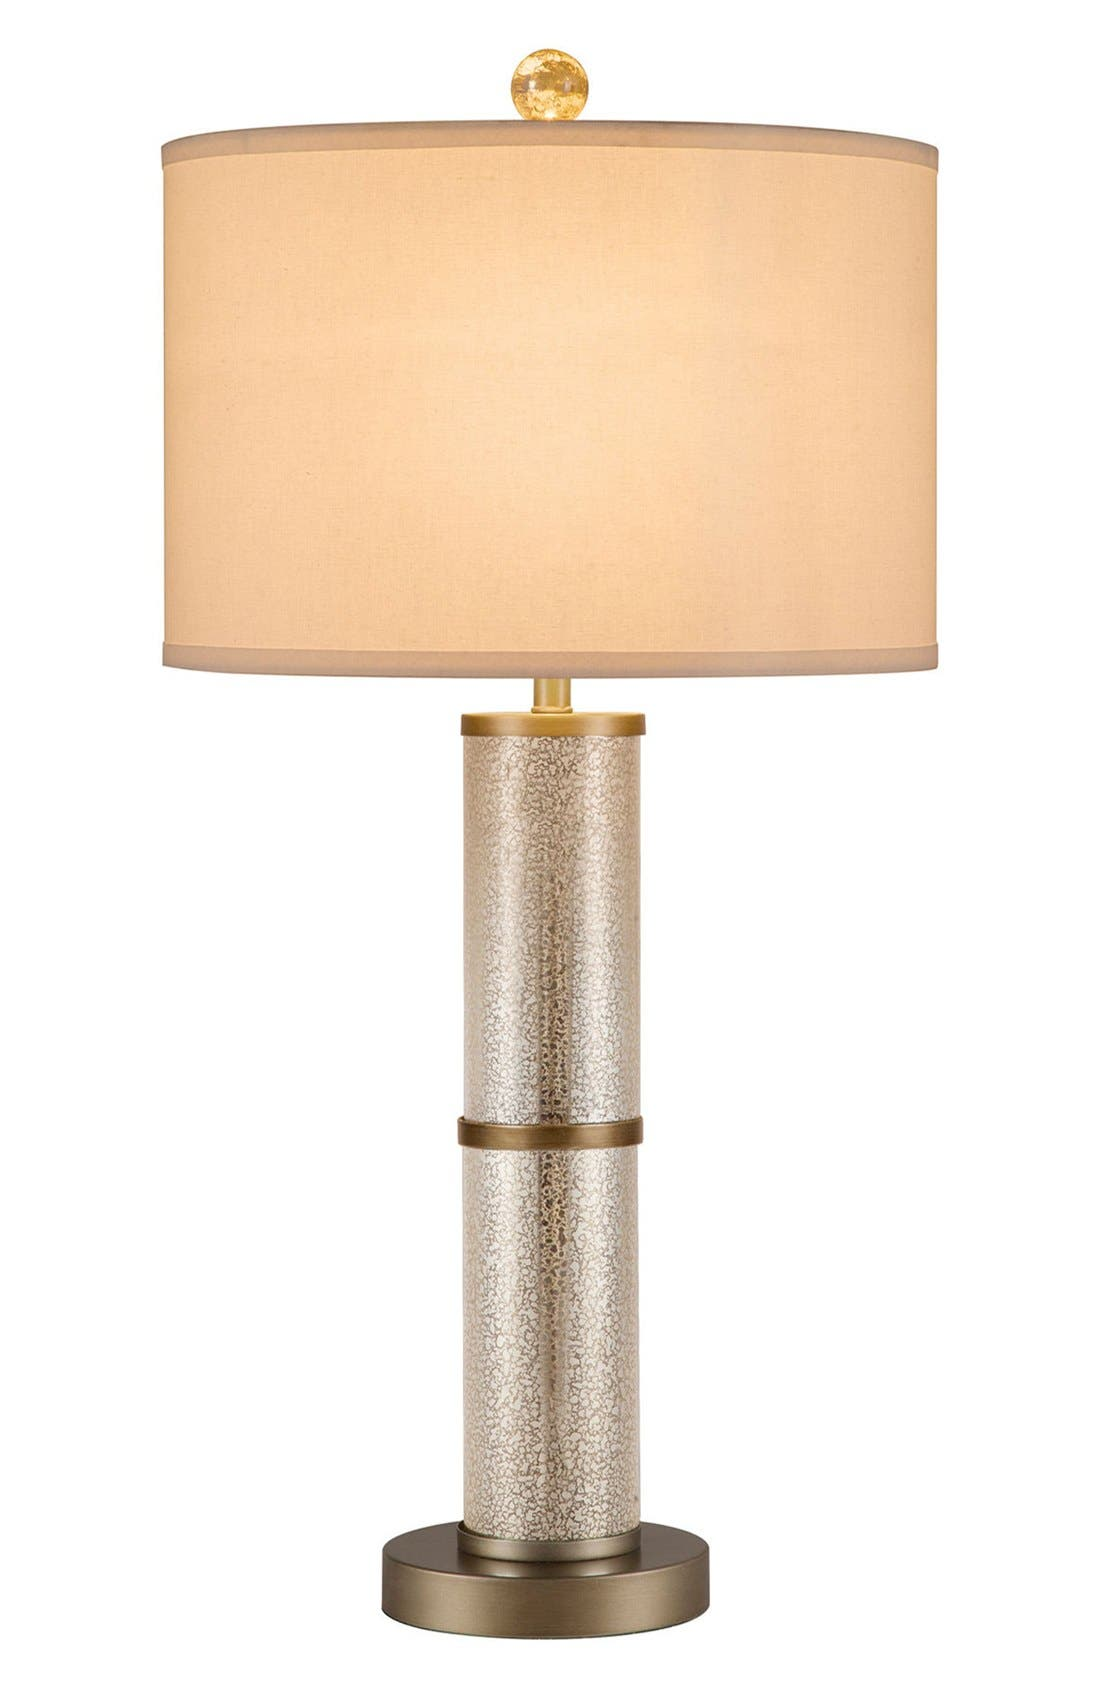 JAlexander Glass Cylinder Table Lamp,                             Main thumbnail 1, color,                             040